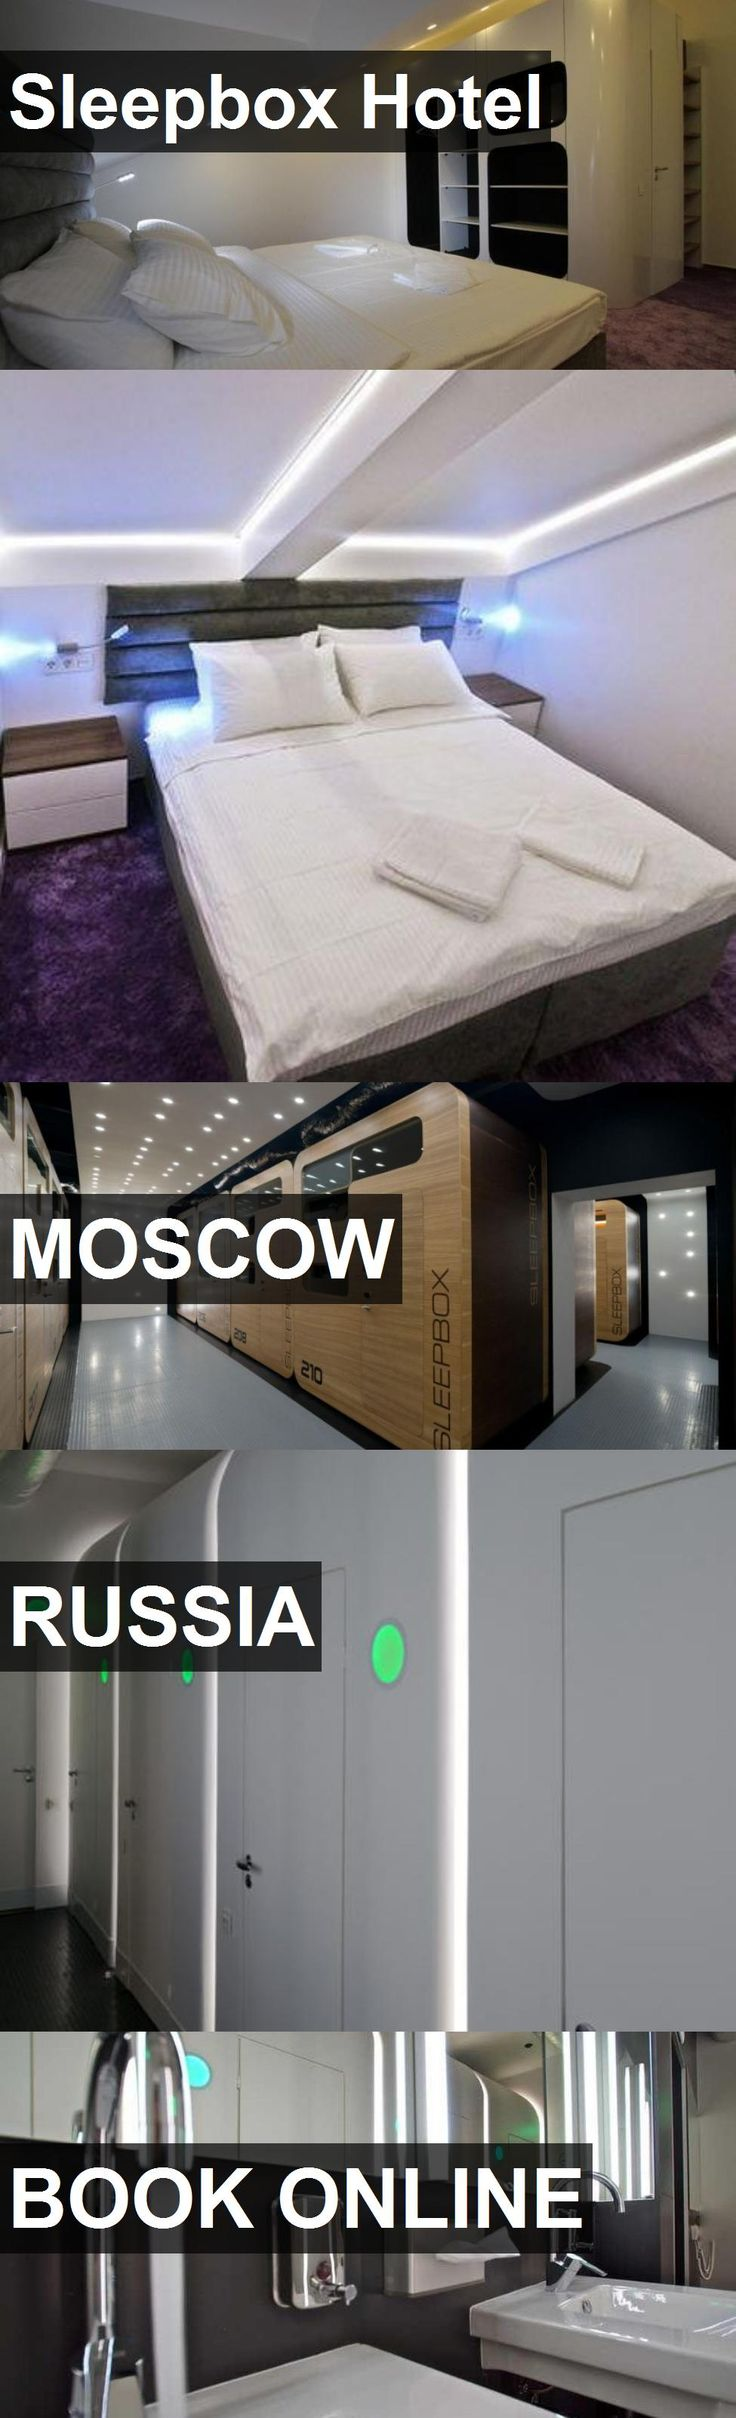 Sleepbox Hotel in Moscow, Russia. For more information, photos, reviews and best prices please follow the link. #Russia #Moscow #travel #vacation #hotel